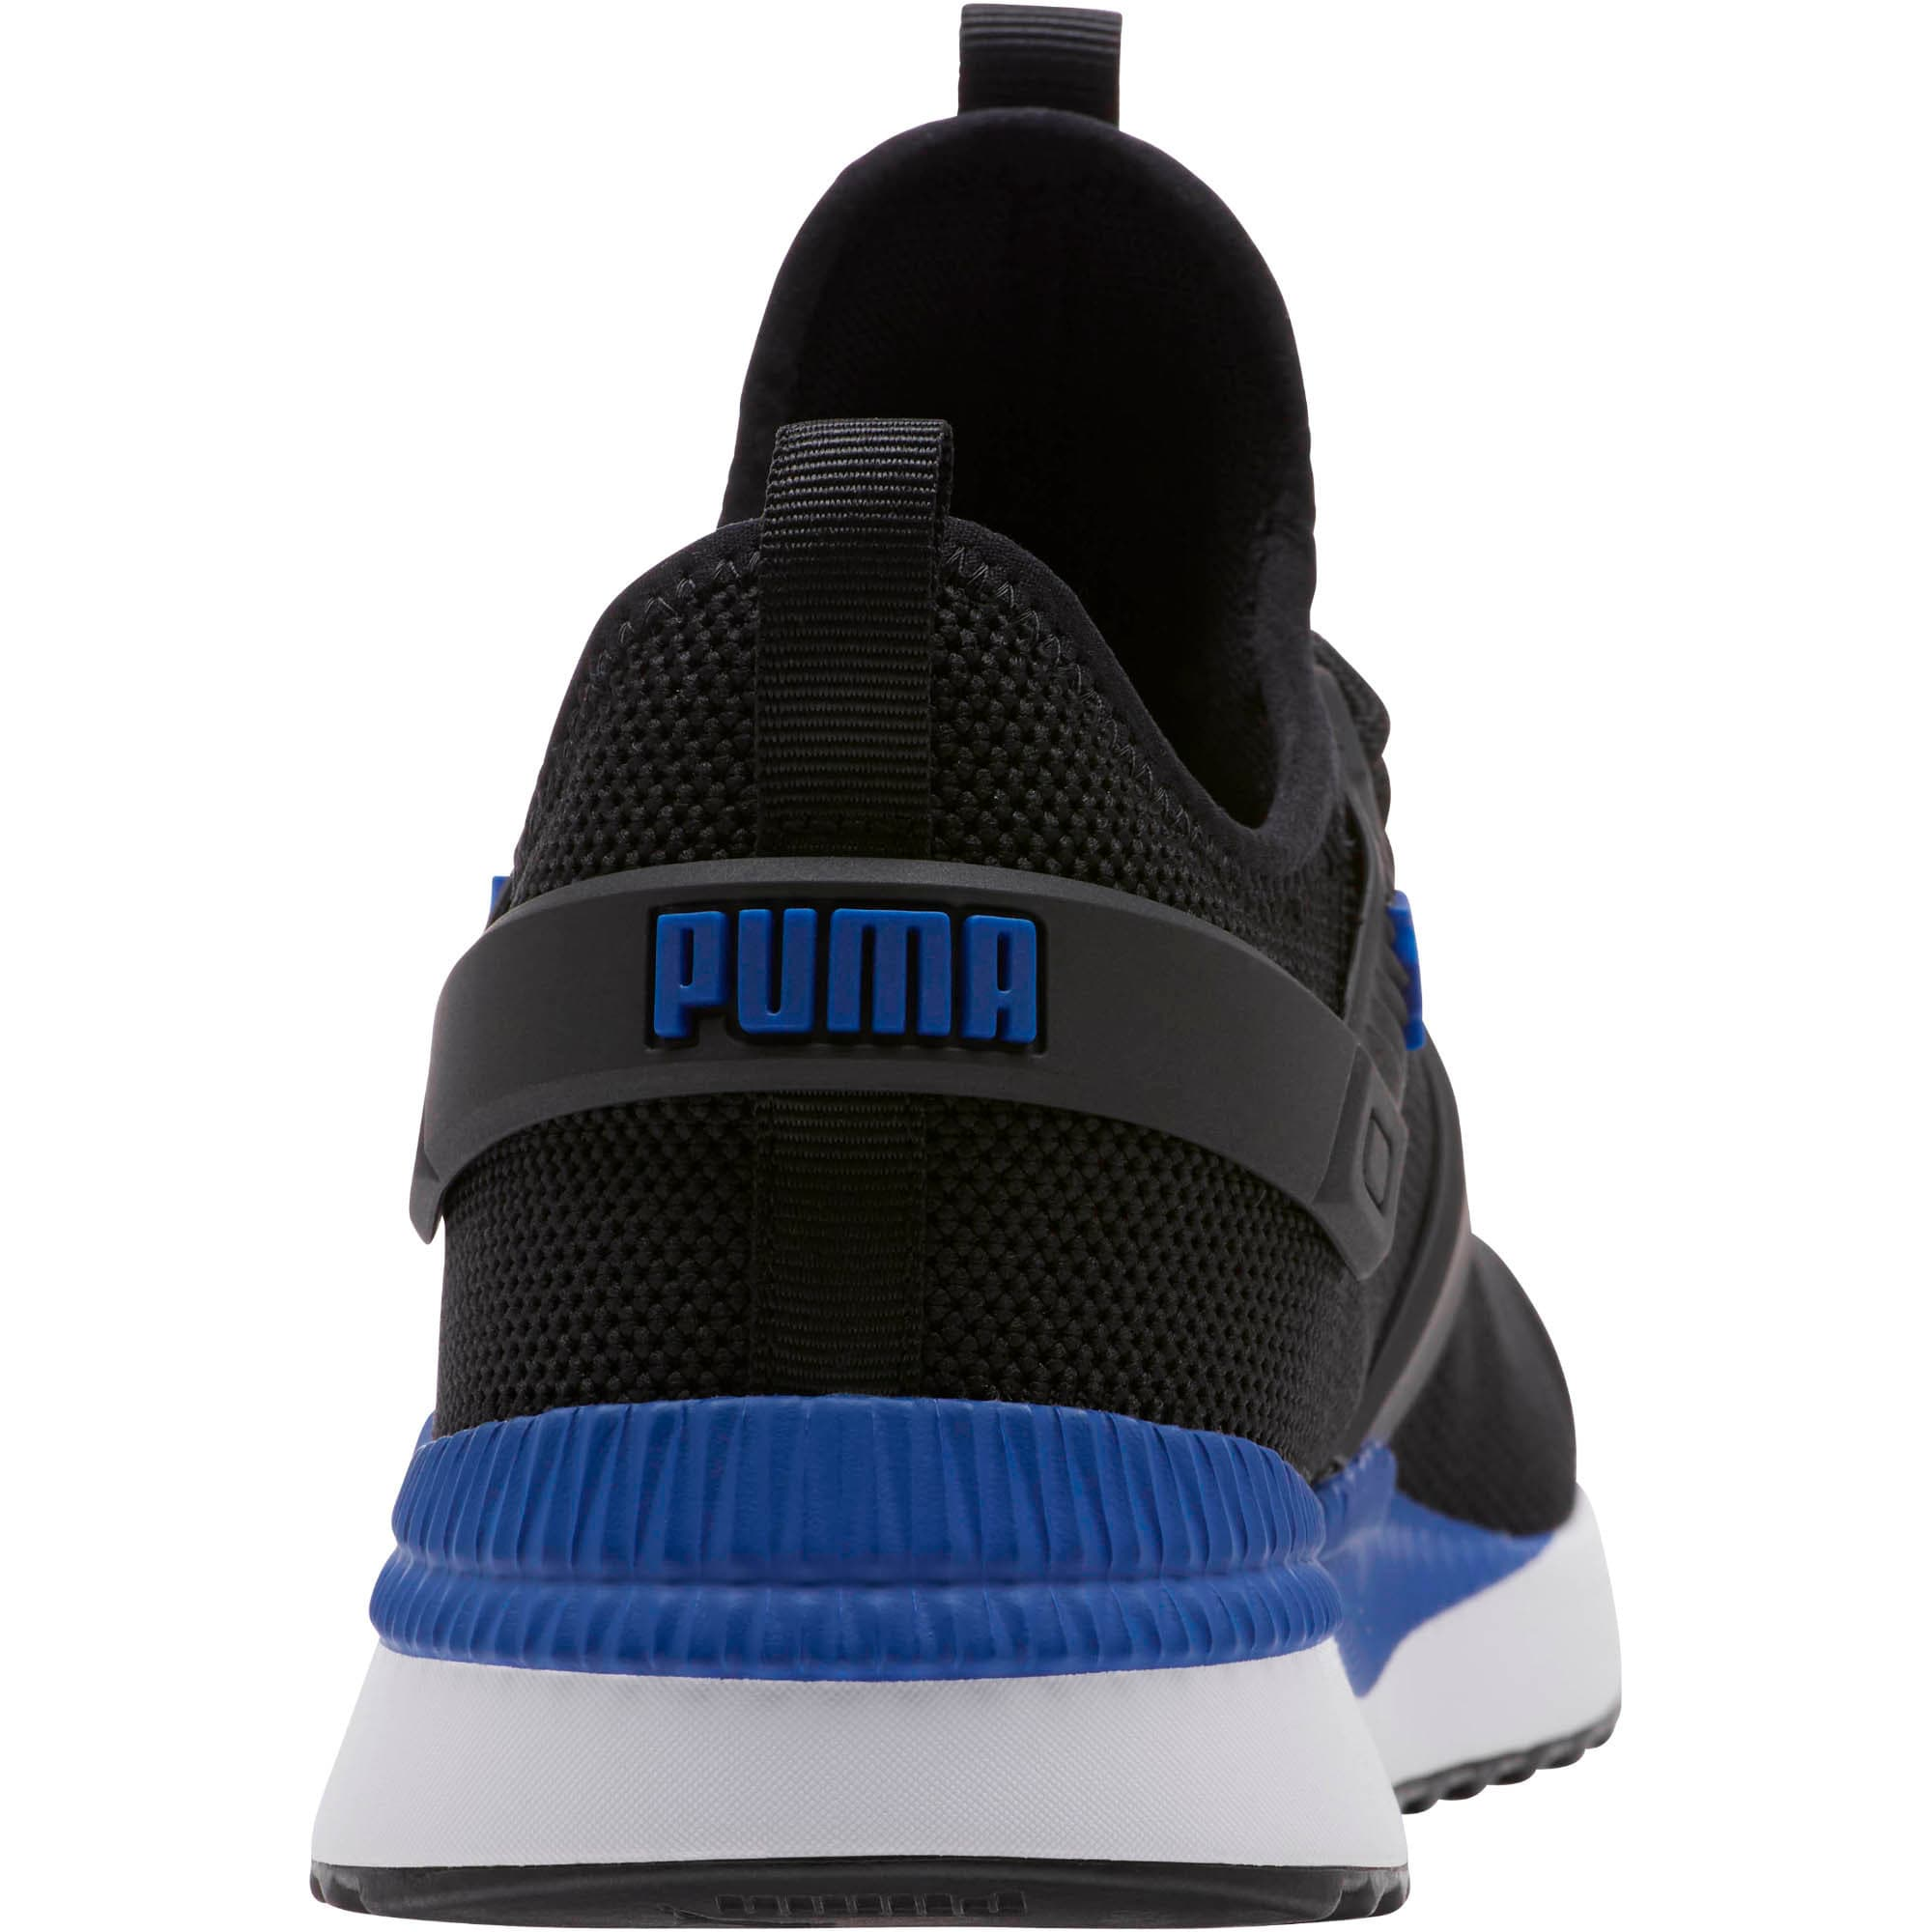 Thumbnail 2 of Pacer Next Excel Shoes, Puma Black-Surf The Web, medium-IND